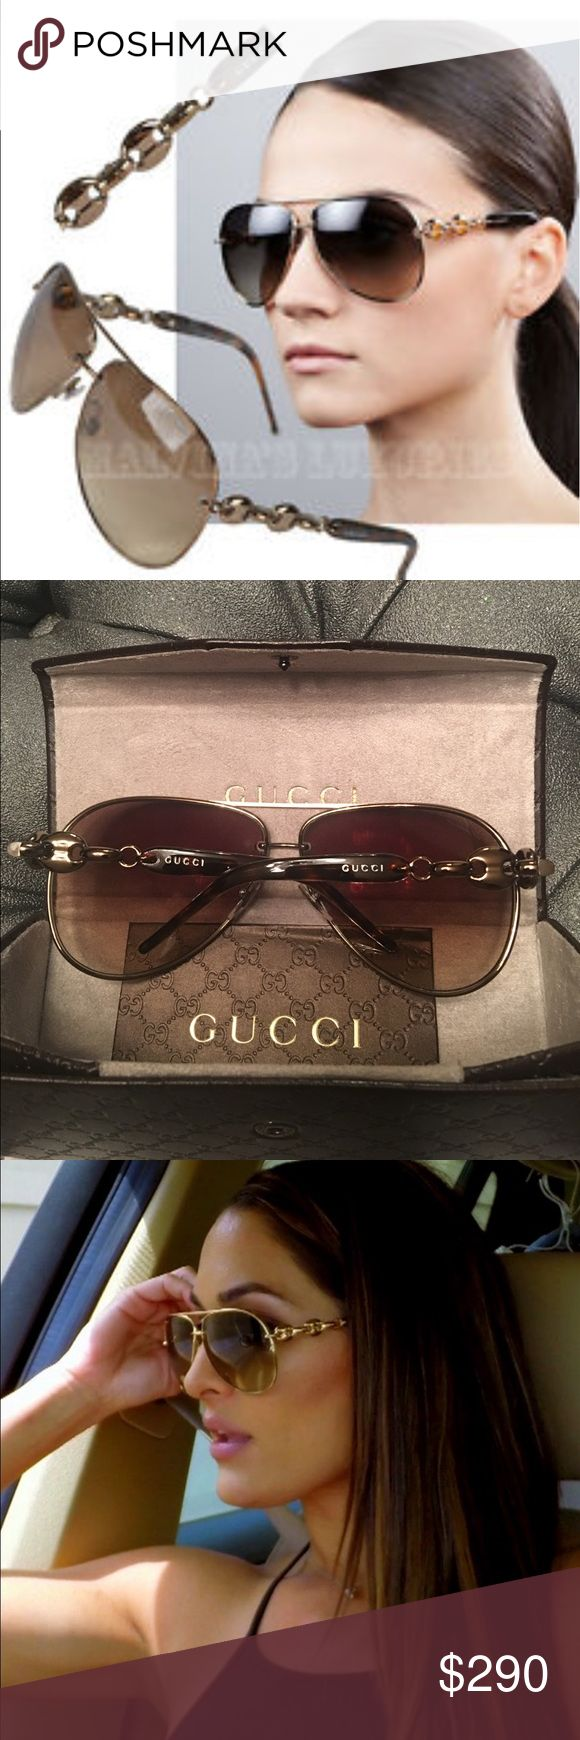 Gucci Sunglasses Gucci Aviator with Bridge. Dark brown copper with signature Gucci locks on arms. Gucci inscribed on lens GG 4225/S 63. Made in Italy. Nose silicone pads. Brown Tortoise tips. Stunning and classy piece. Delivered with case and cloth. Gucci Accessories Sunglasses